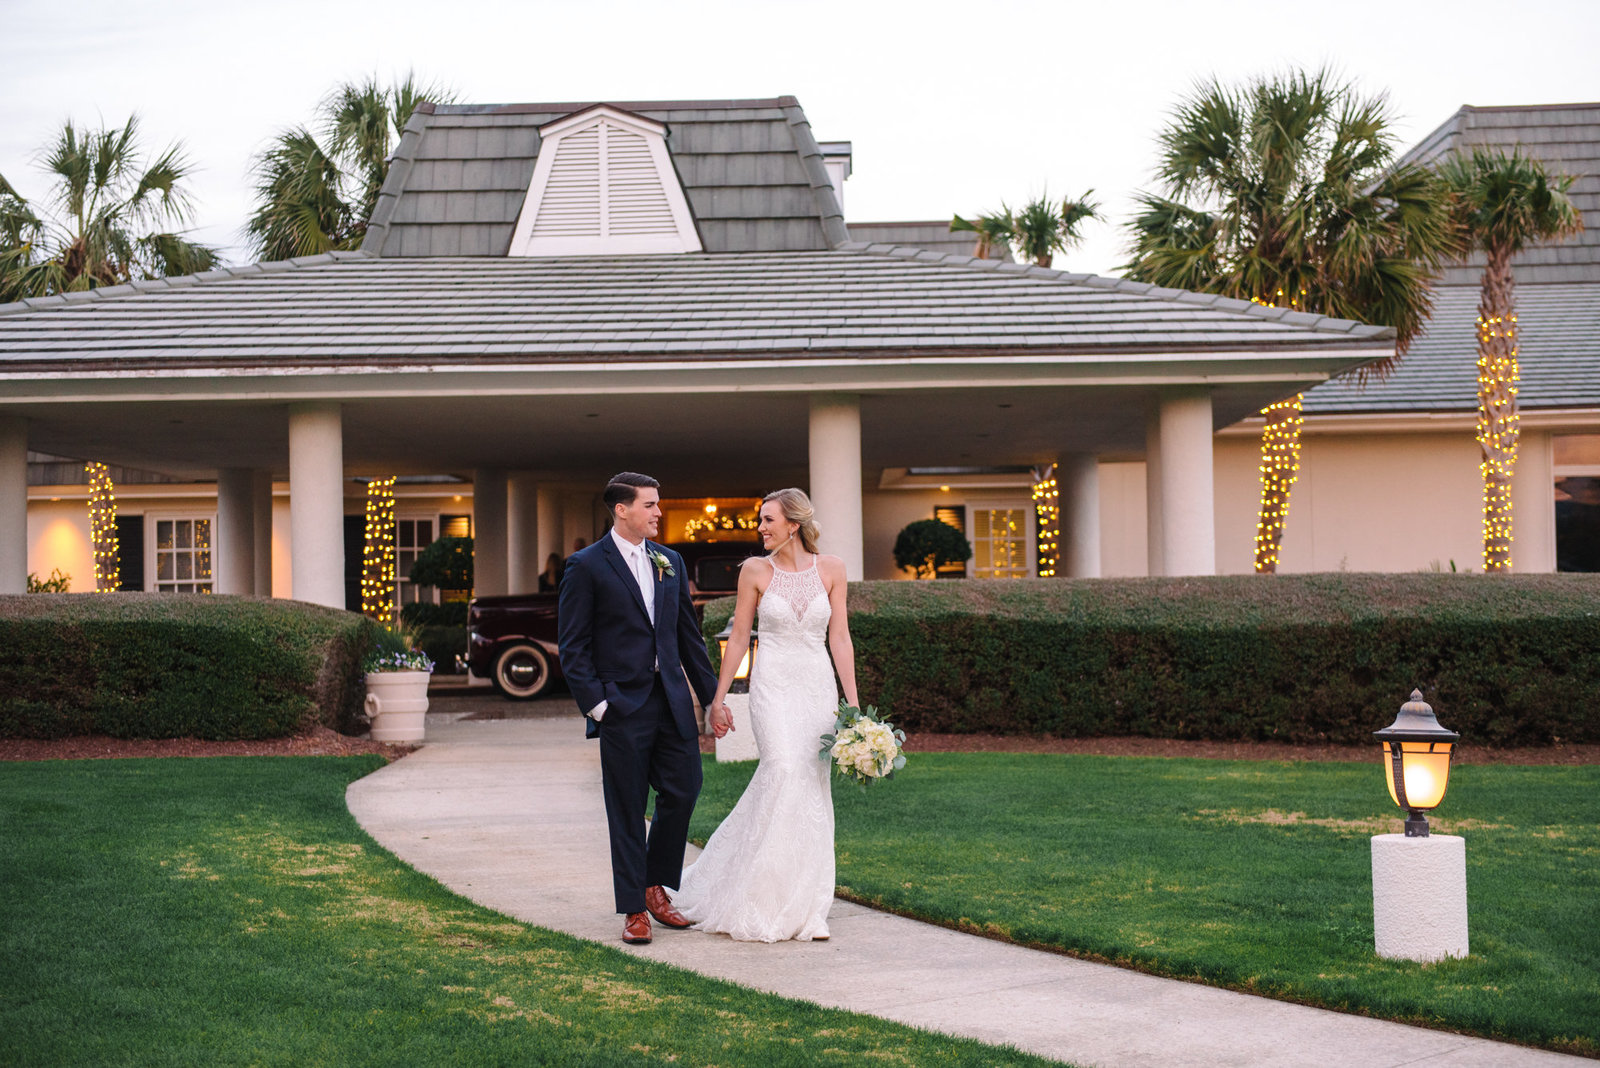 Wedding Photography in South Carolina by Myrtle Beach Wedding Photographer Pasha Belman